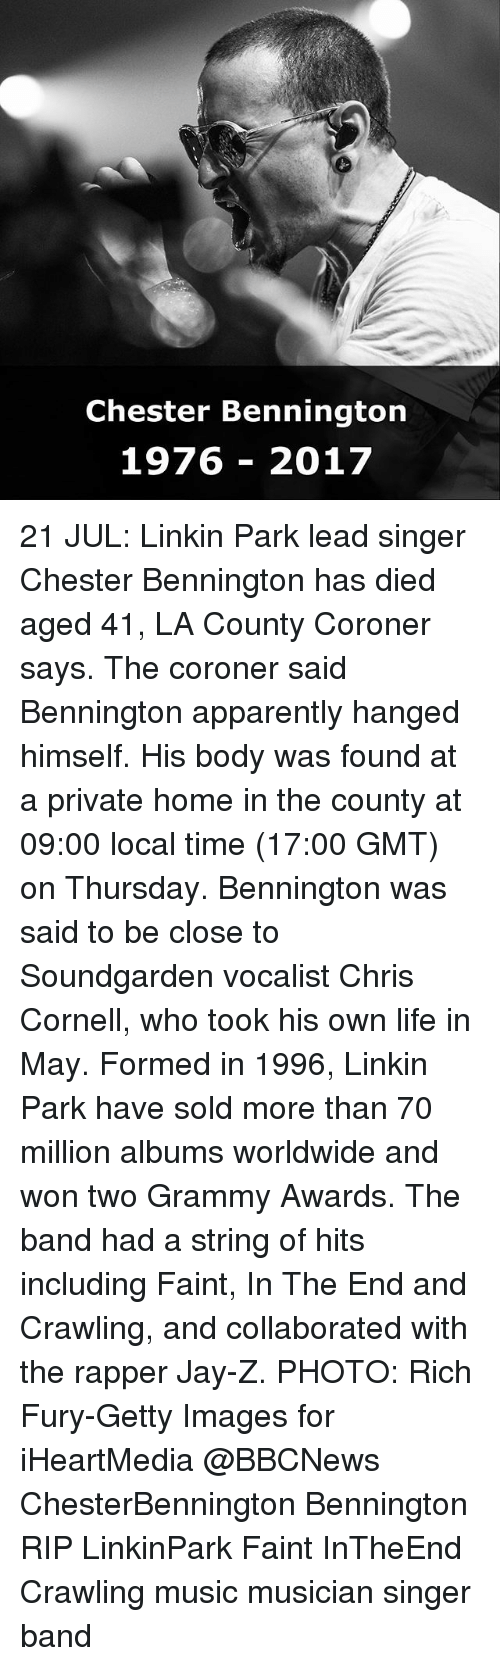 Grammy Awards: Chester Bennington  1976 - 2017 21 JUL: Linkin Park lead singer Chester Bennington has died aged 41, LA County Coroner says. The coroner said Bennington apparently hanged himself. His body was found at a private home in the county at 09:00 local time (17:00 GMT) on Thursday. Bennington was said to be close to Soundgarden vocalist Chris Cornell, who took his own life in May. Formed in 1996, Linkin Park have sold more than 70 million albums worldwide and won two Grammy Awards. The band had a string of hits including Faint, In The End and Crawling, and collaborated with the rapper Jay-Z. PHOTO: Rich Fury-Getty Images for iHeartMedia @BBCNews ChesterBennington Bennington RIP LinkinPark Faint InTheEnd Crawling music musician singer band